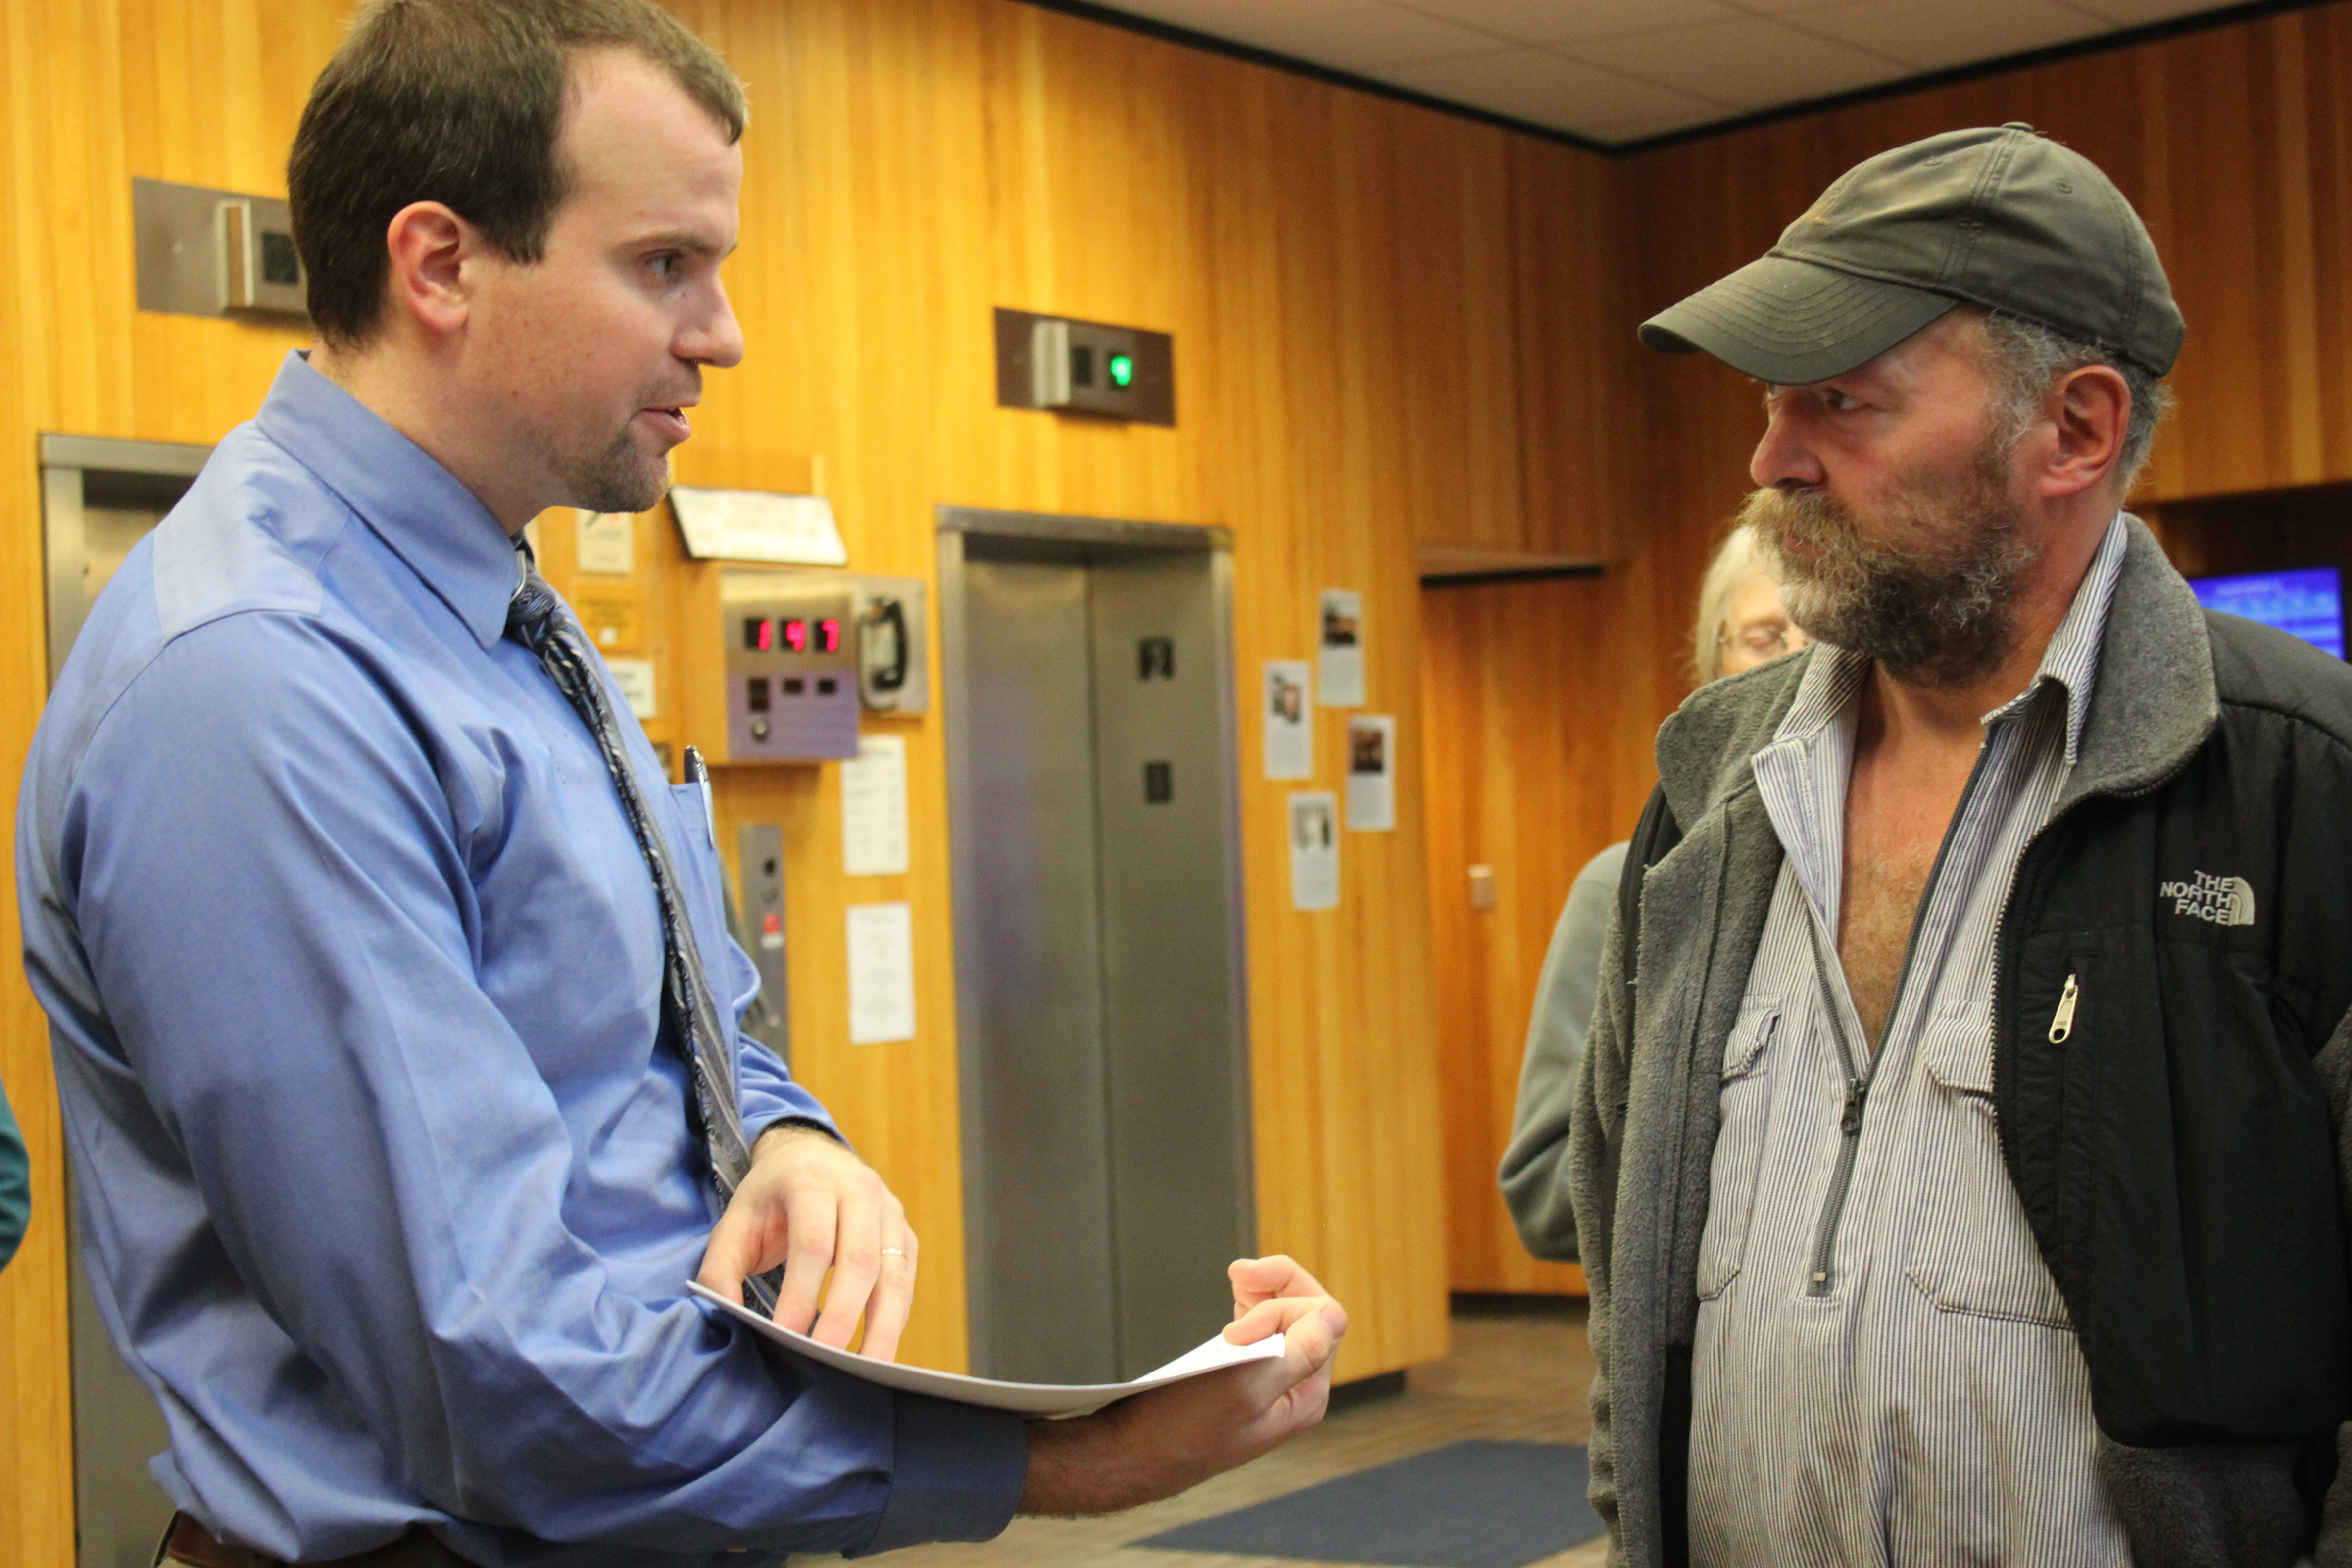 In the lobby of the Dimond Courthourse Monday morning, attorney Nick Polasky hands trapper John Forrest court documents before the trial. Polasky is Kathleen Turley's lawyer. (Photo by Lisa Phu/KTOO)